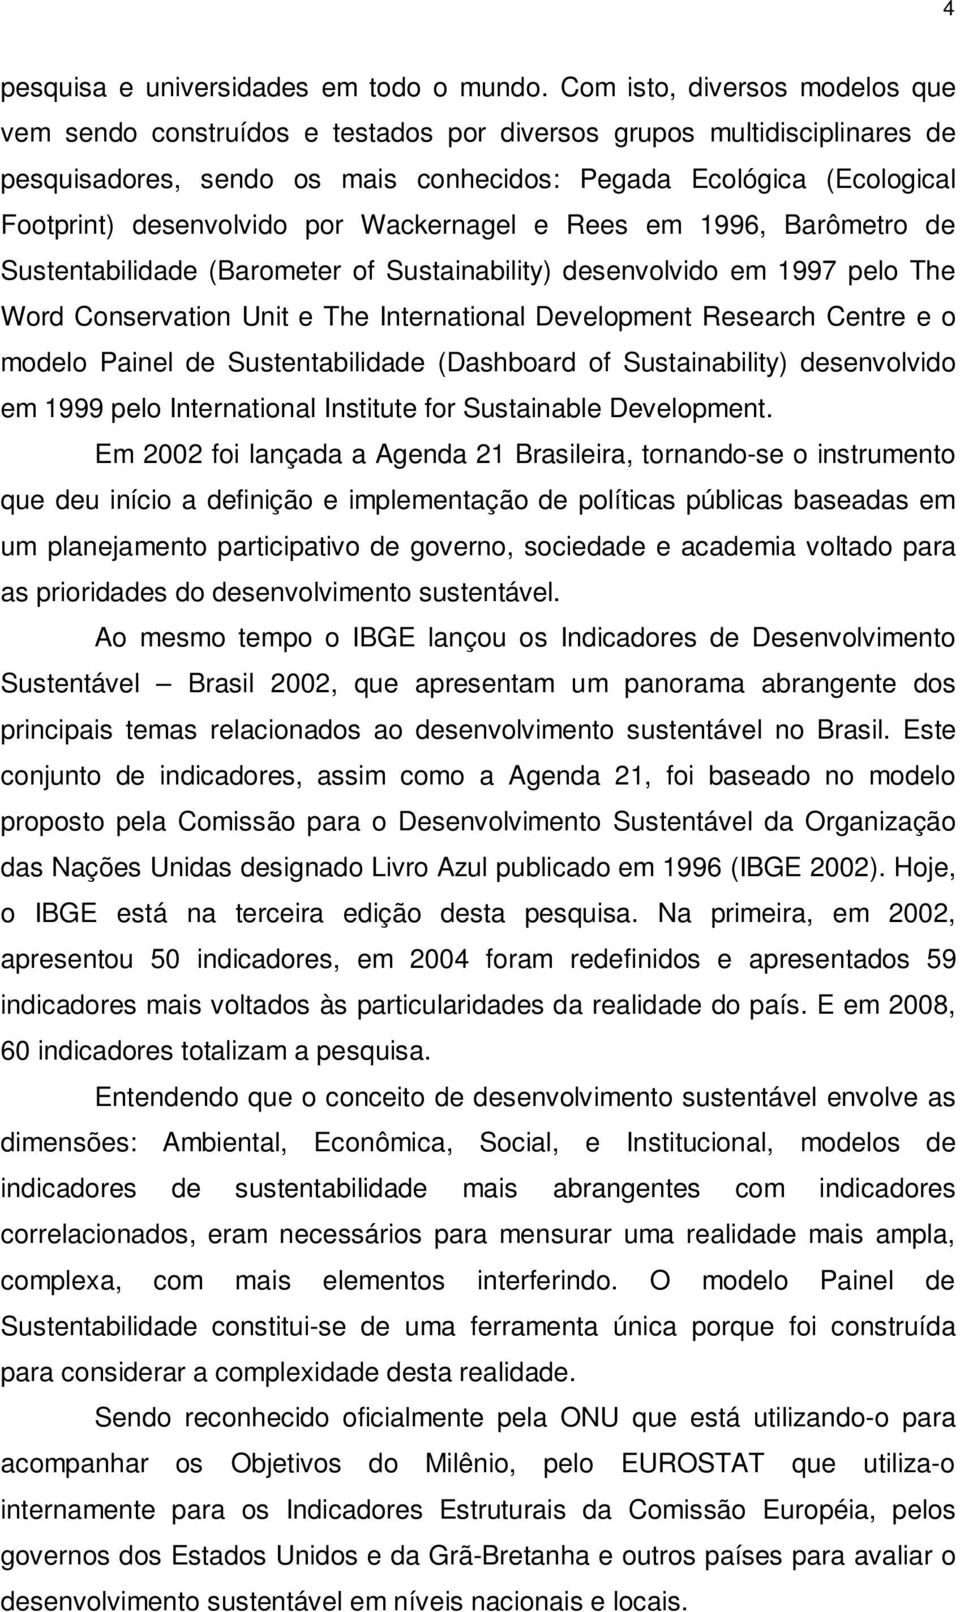 por Wackernagel e Rees em 1996, Barômetro de Sustentabilidade (Barometer of Sustainability) desenvolvido em 1997 pelo The Word Conservation Unit e The International Development Research Centre e o